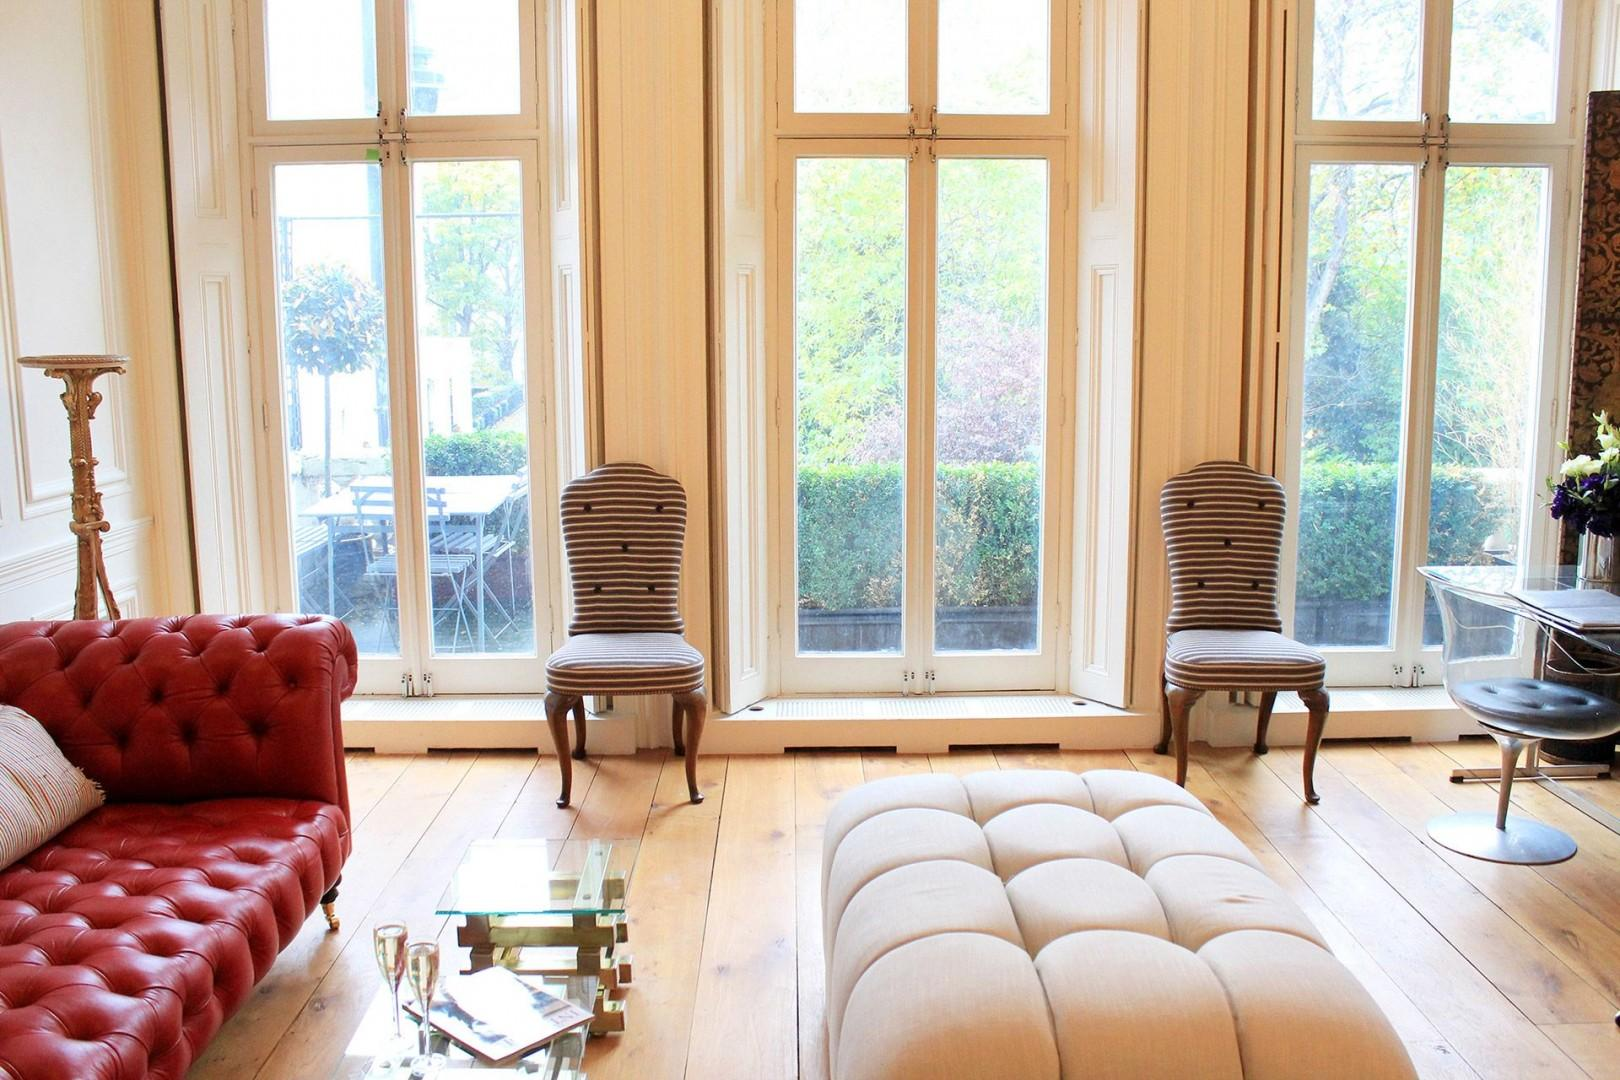 Large French doors open to an inviting balcony with table and chairs